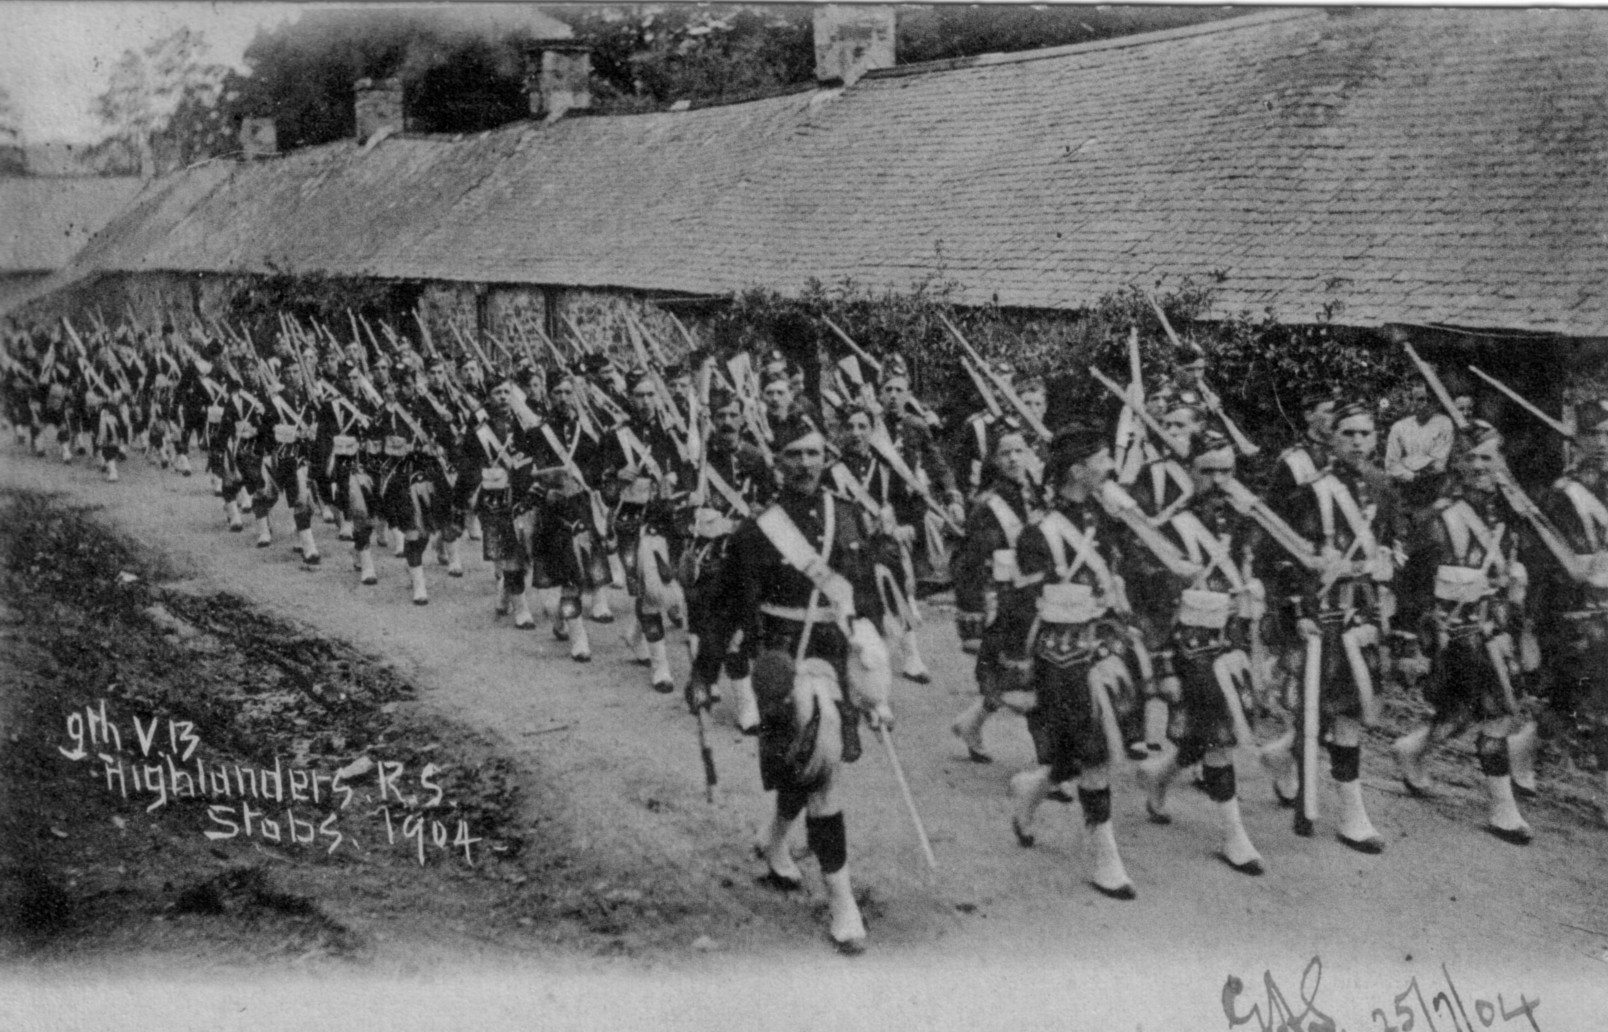 Royal Scots Highlanders; 1904; Marching; Stobs Camp; 9th Voluntary Battalion; blacksmiths